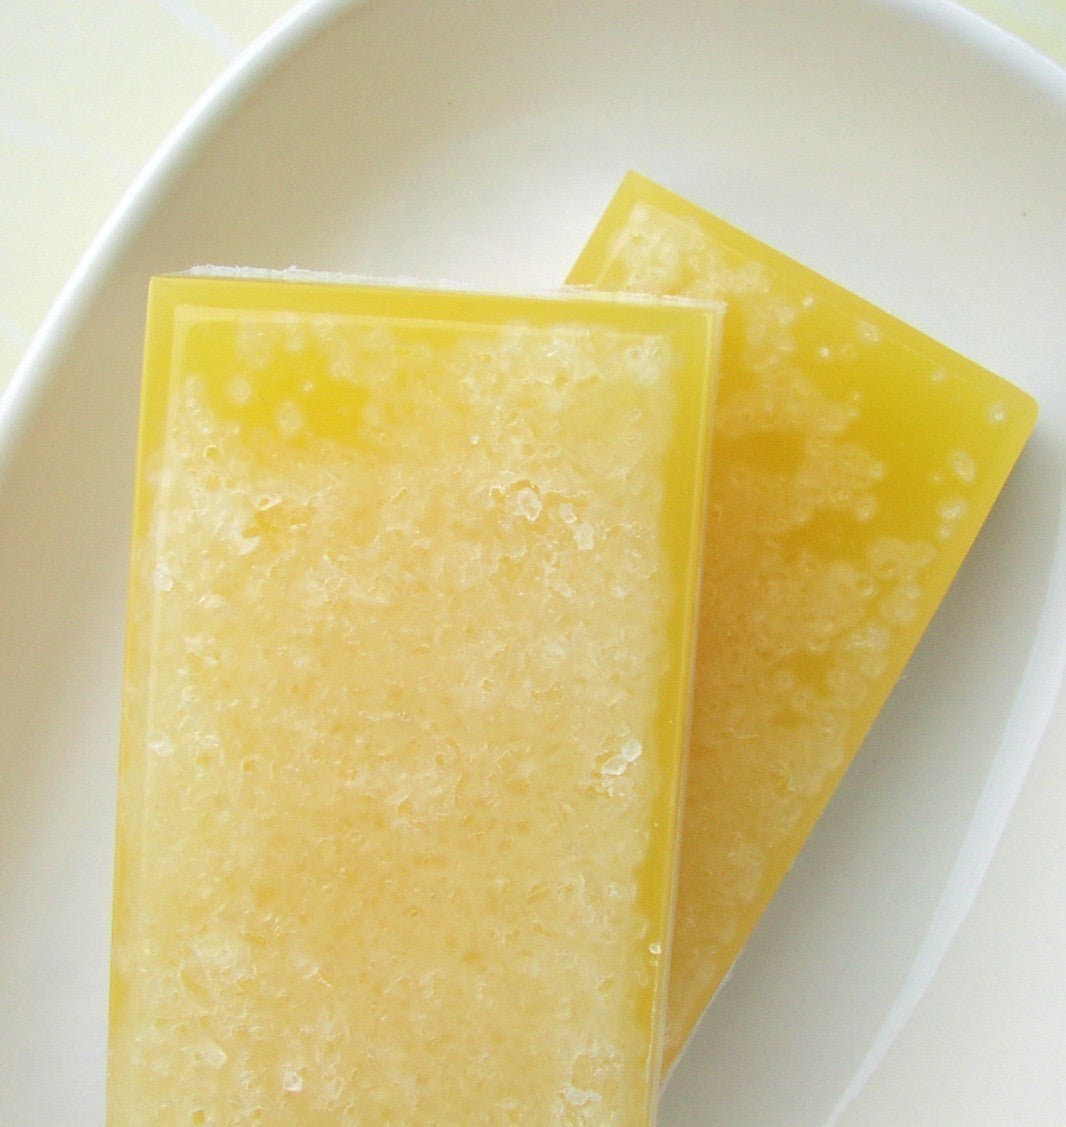 Citrus Lemon Salt bar Soap Bar - sunbasilgarden